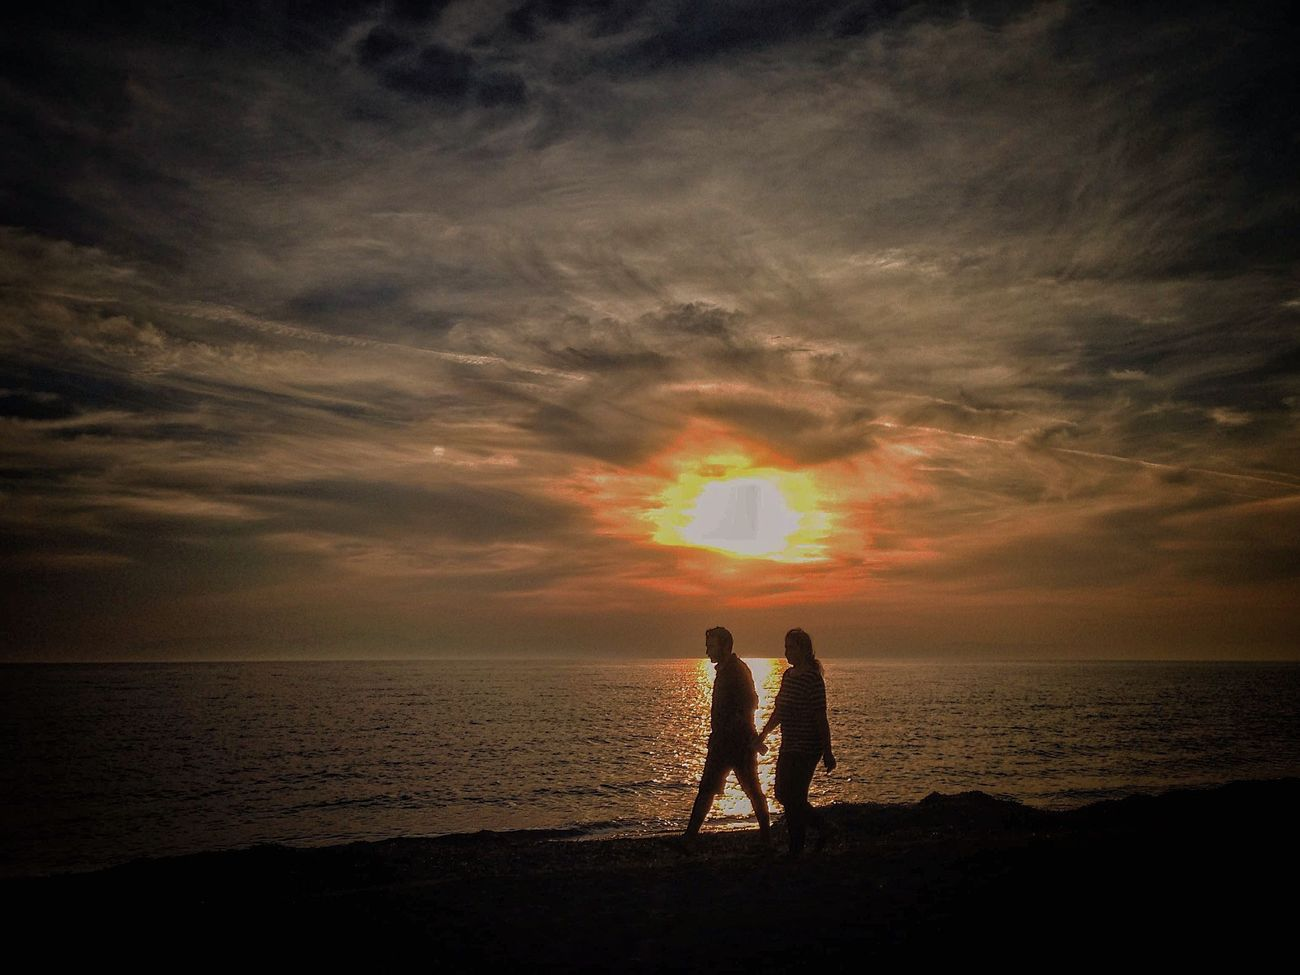 Sahilde Sonbahar... Sunset Sea Beach Two People Gazonungözü Horizon Over Water Real People Water Silhouette Full Length Standing Cloud - Sky Togetherness Beauty In Nature Bonding Sky Outdoors Men Nature Childhood Scenics